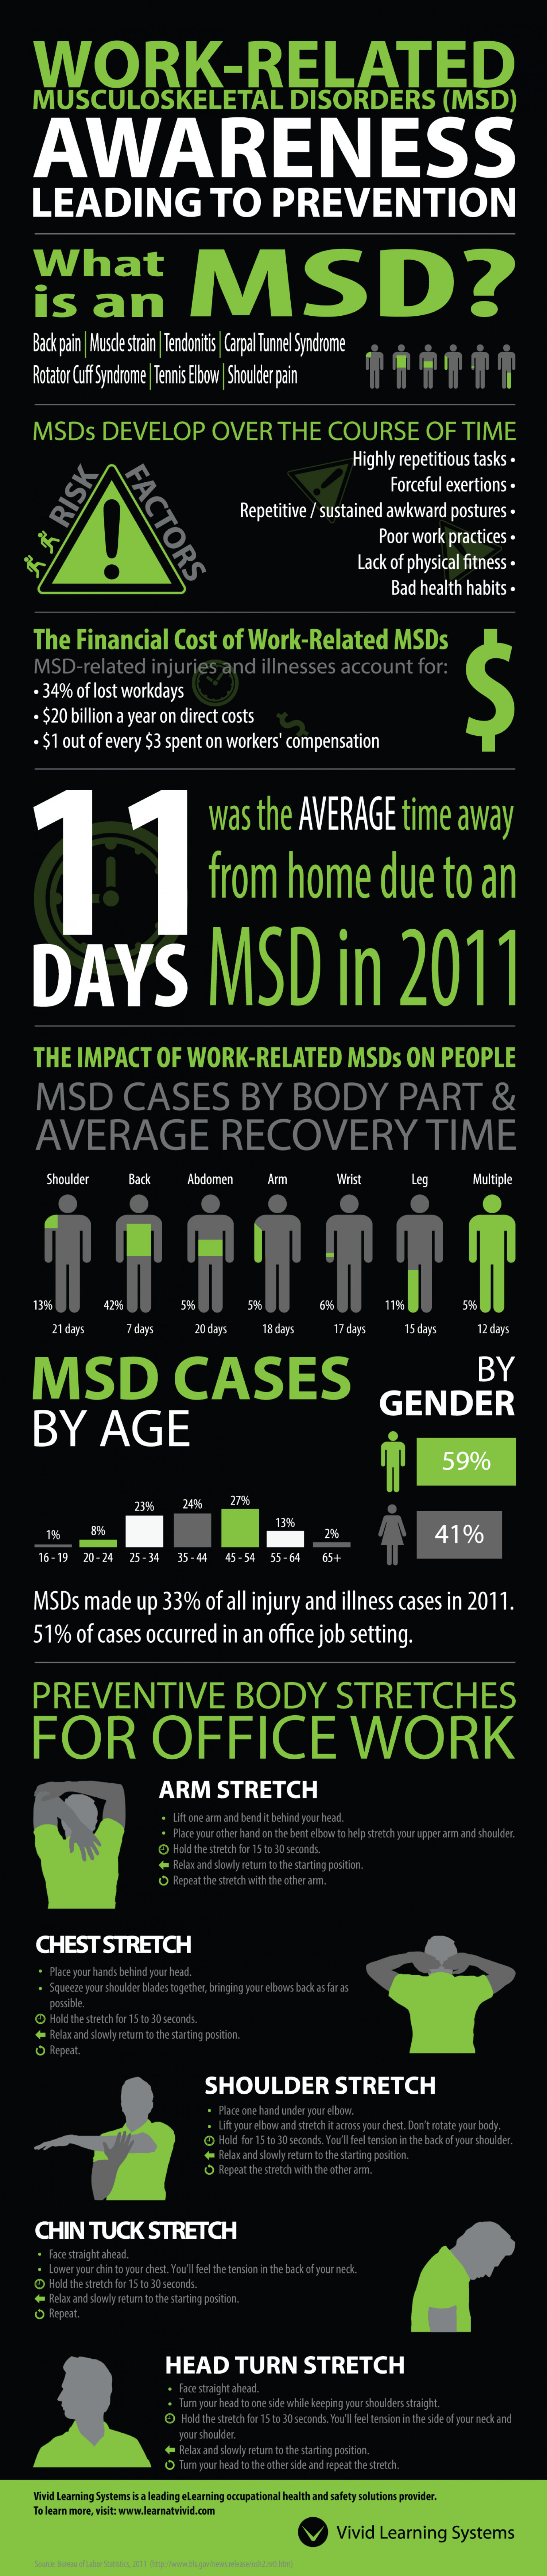 Work-Related Musculoskeletal Disorders (MSD) Infographic